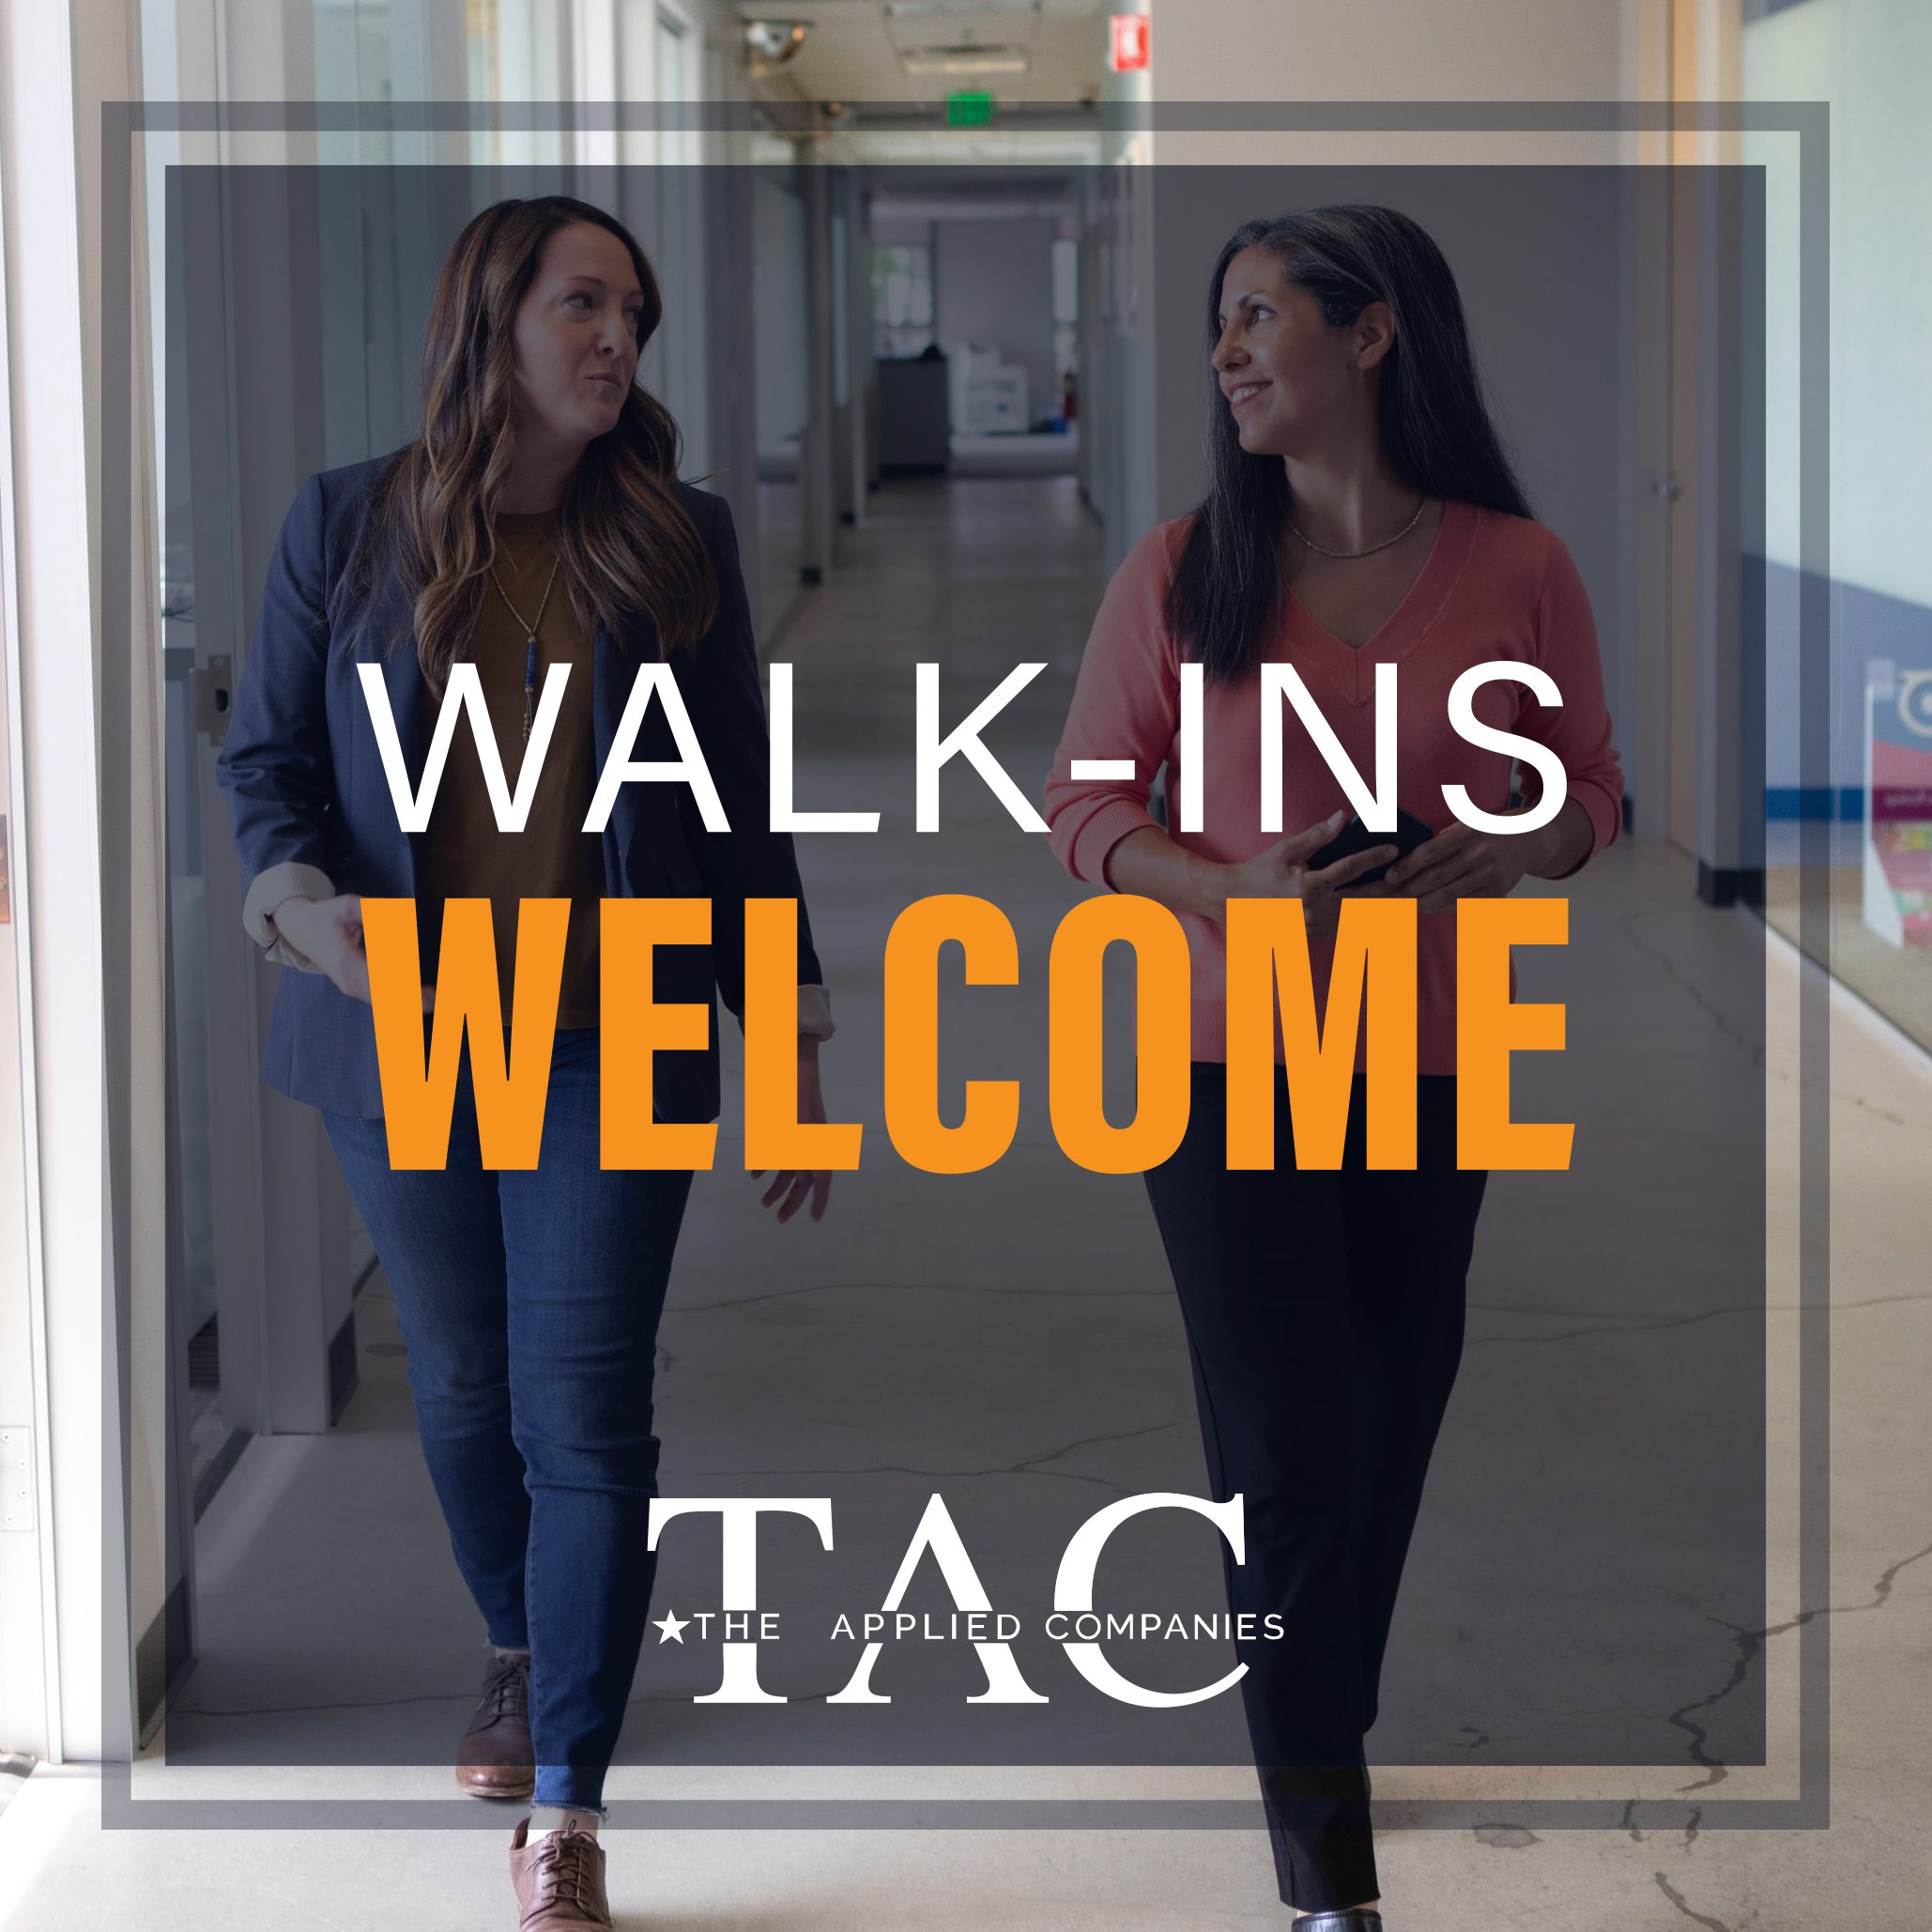 the applied companies - walk ins